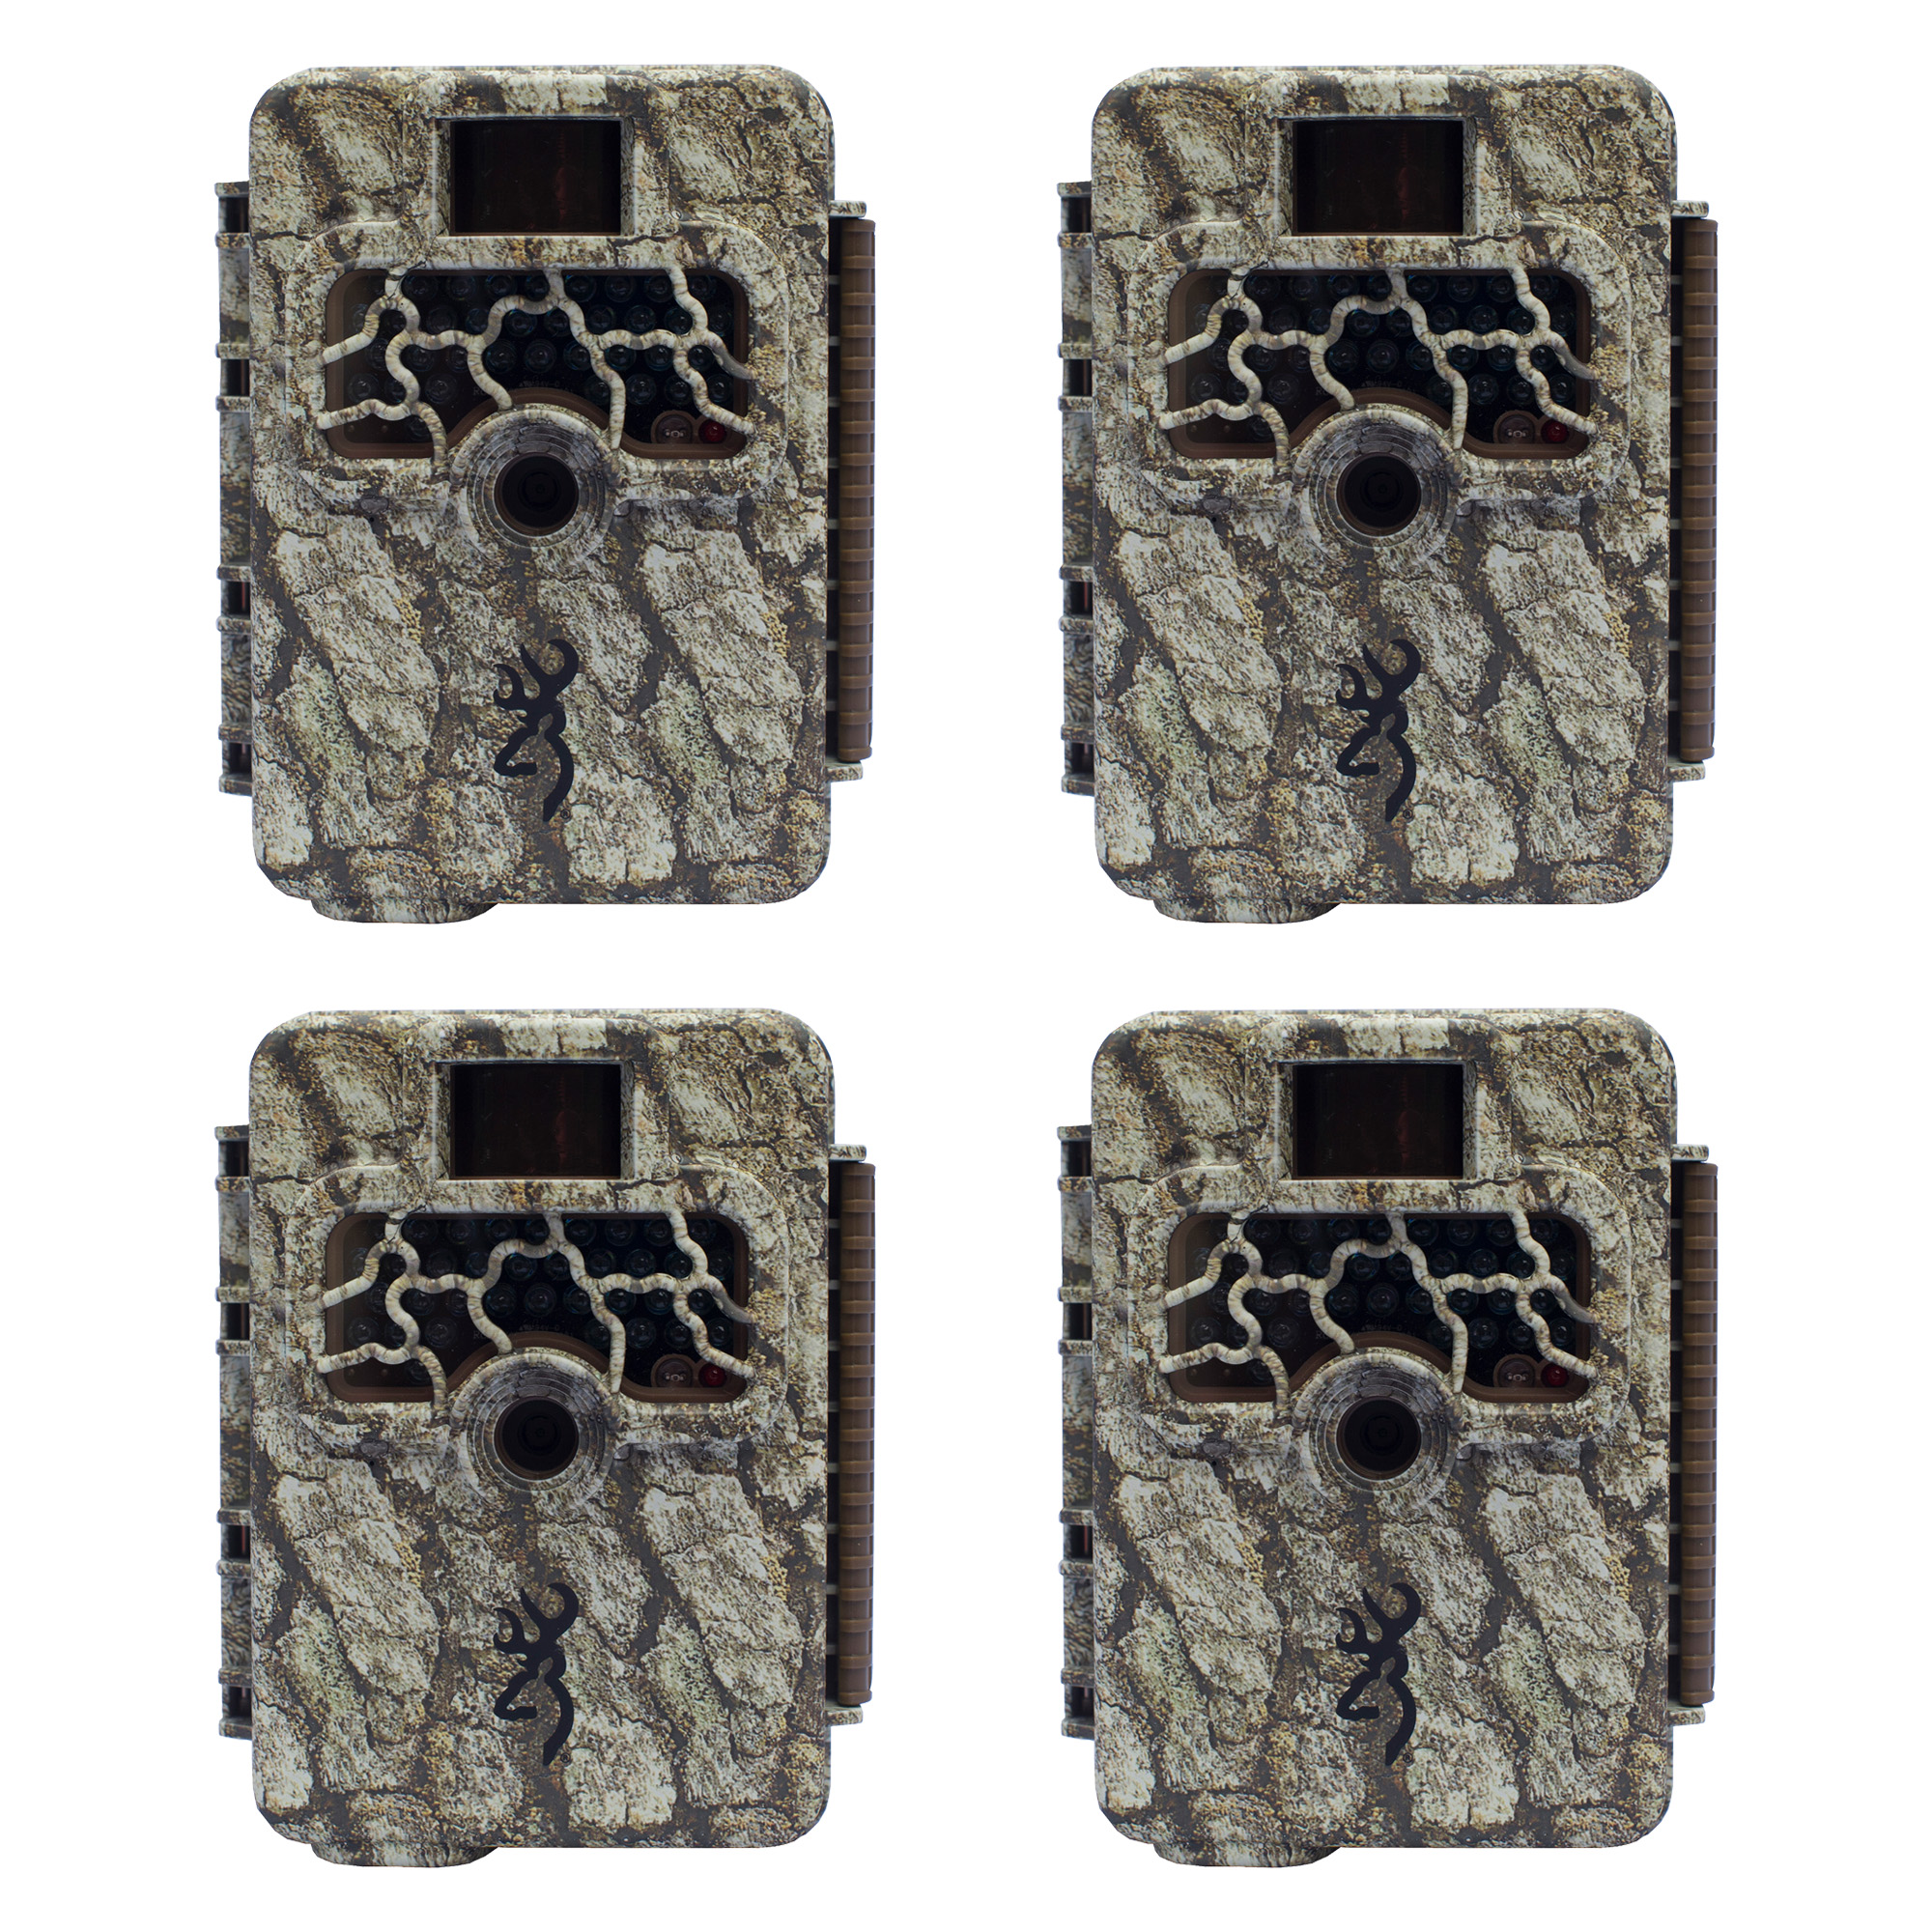 Browning Trail Cameras Command Ops 14MP Infrared Game Camera, 4 Pack | BTC4-14 by Browning Trail Cameras